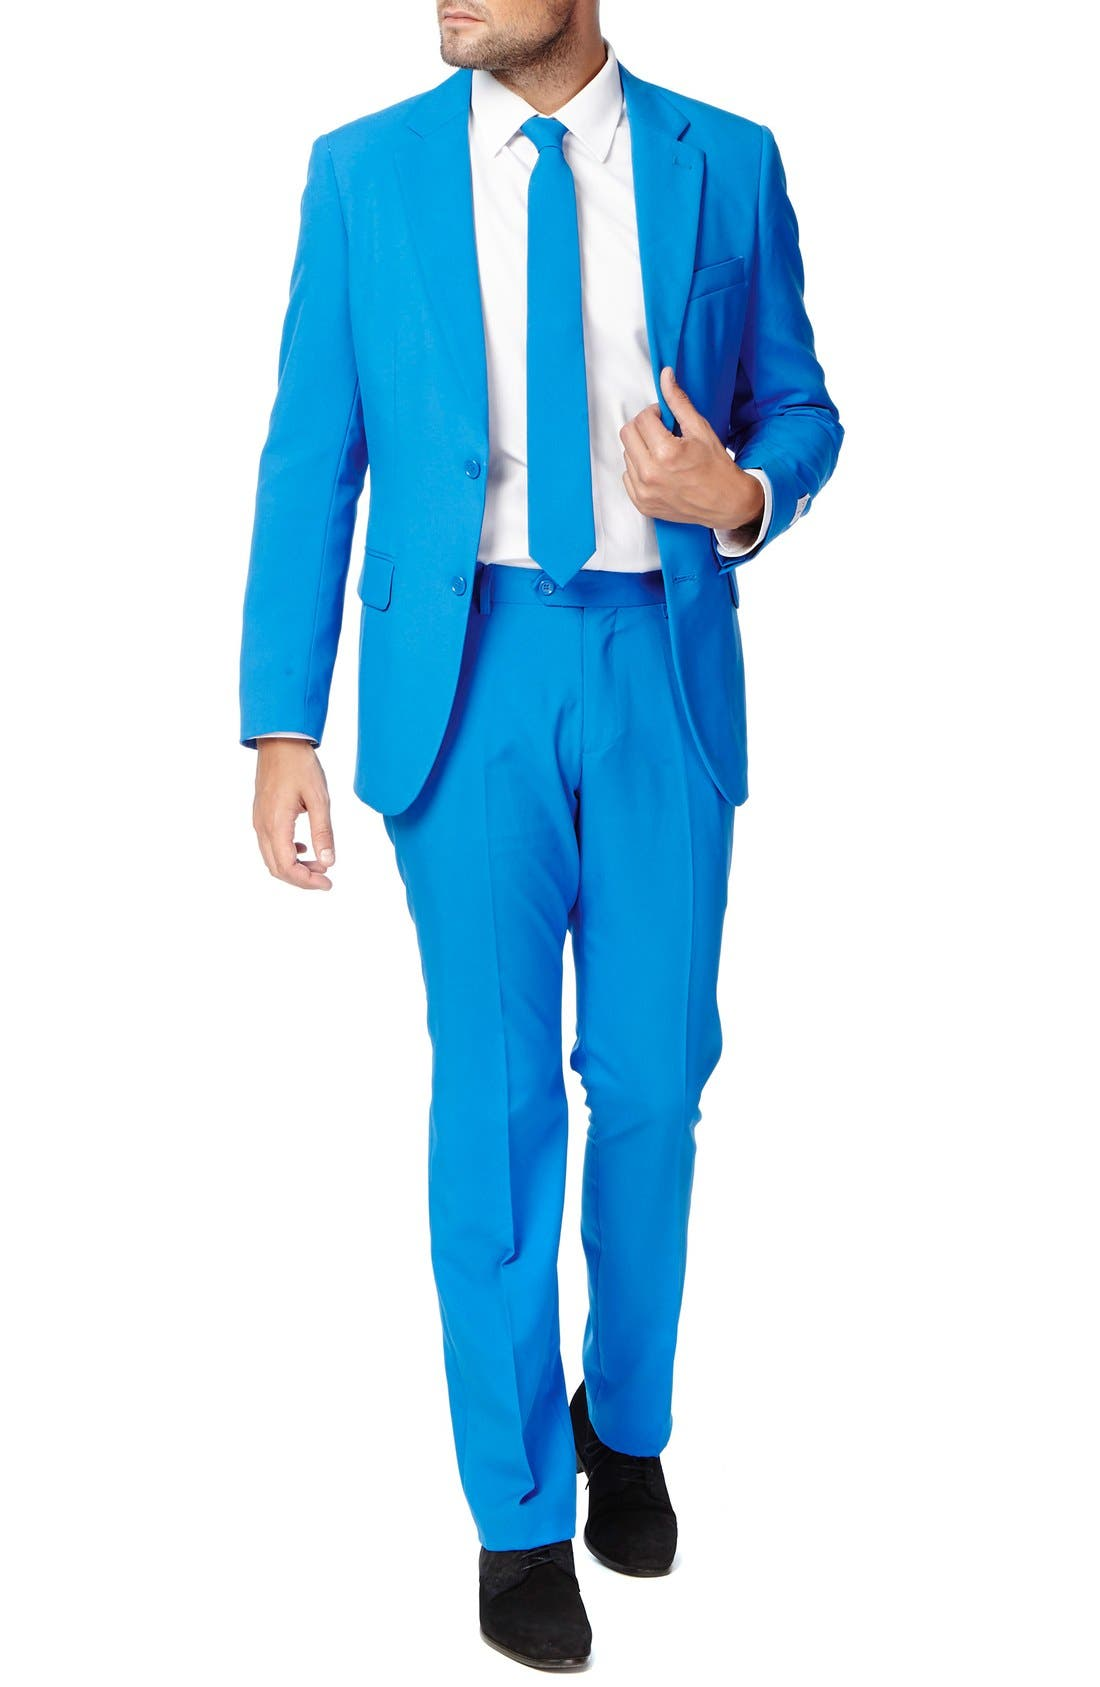 OppoSuits 'Stars & Stripes' Trim Fit Suit with Tie